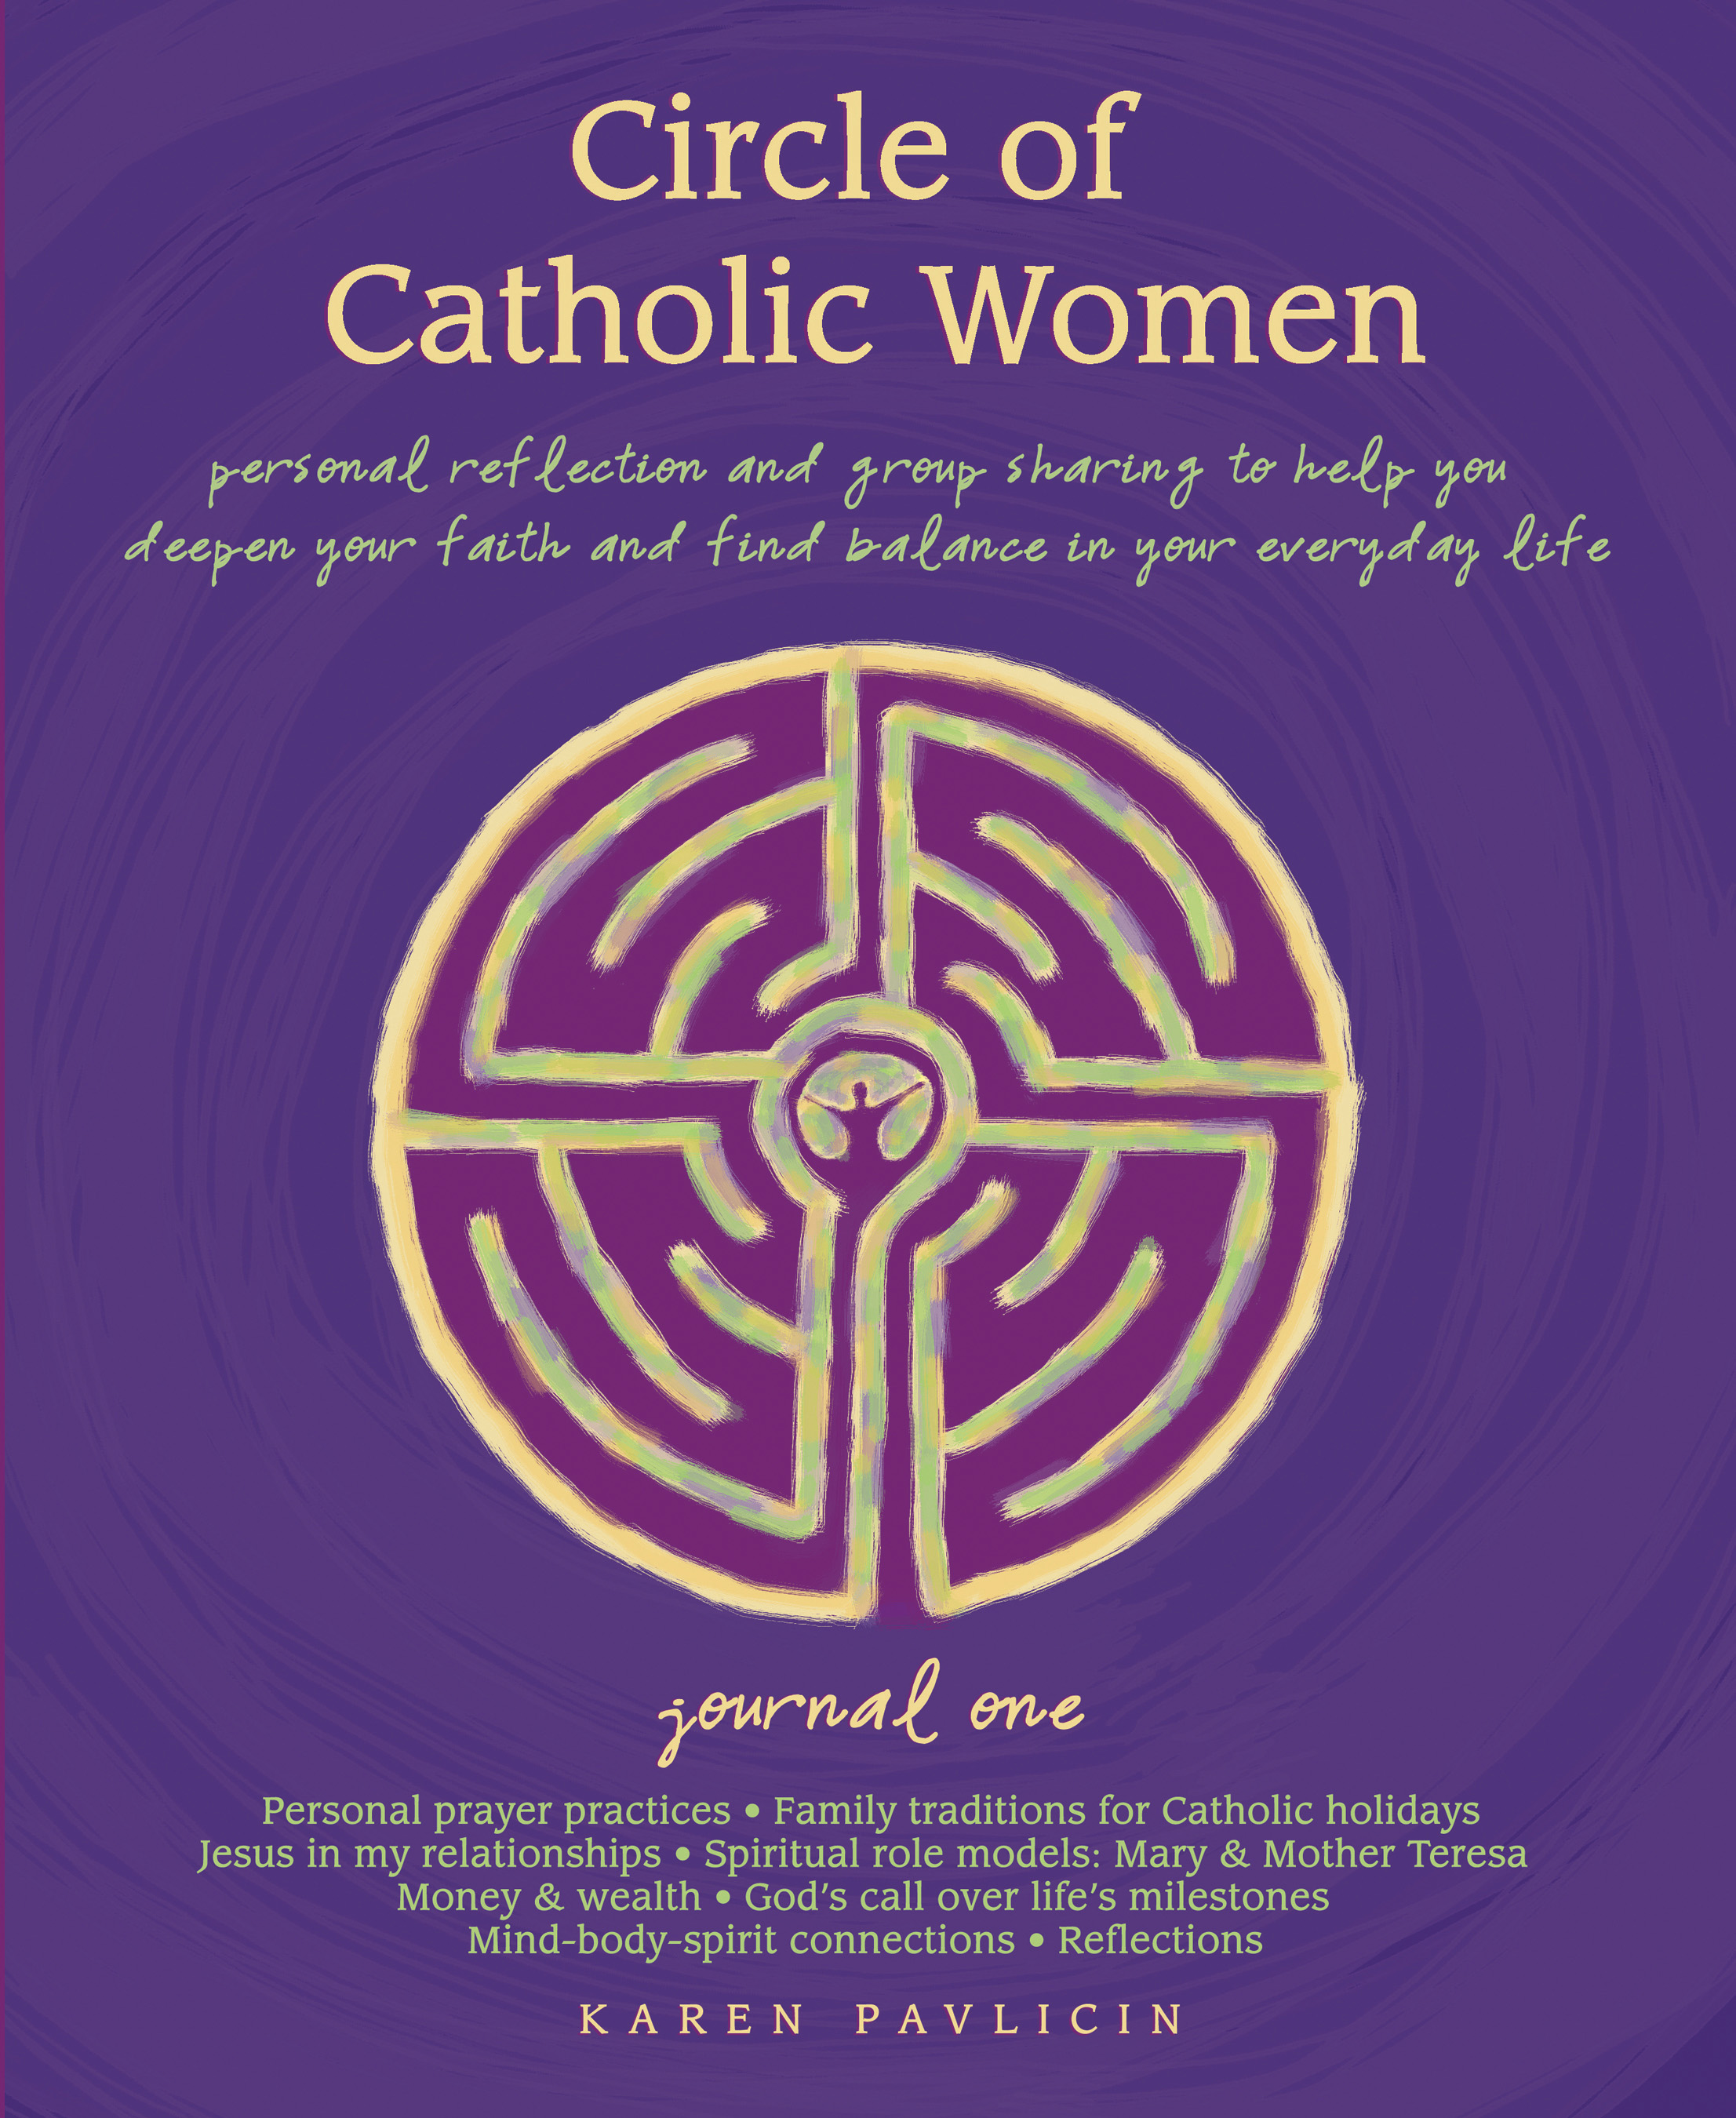 Circle of Catholic Women Journal One by Karen Pavlicin